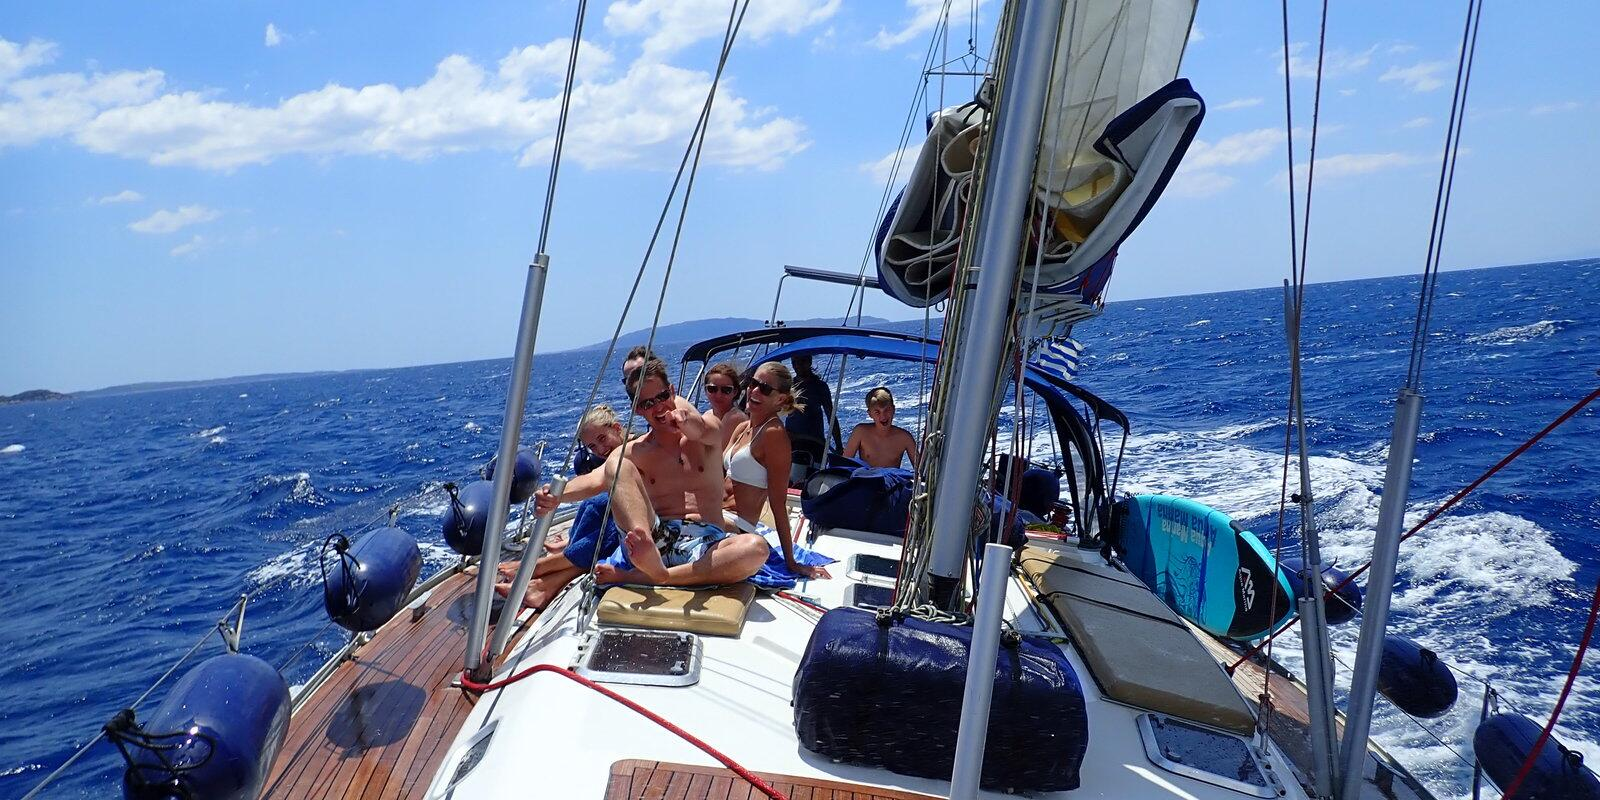 The BEST of the Cyclades & Saronic. Only 4- 6 guests - travel in comfort and avoid the crowds!